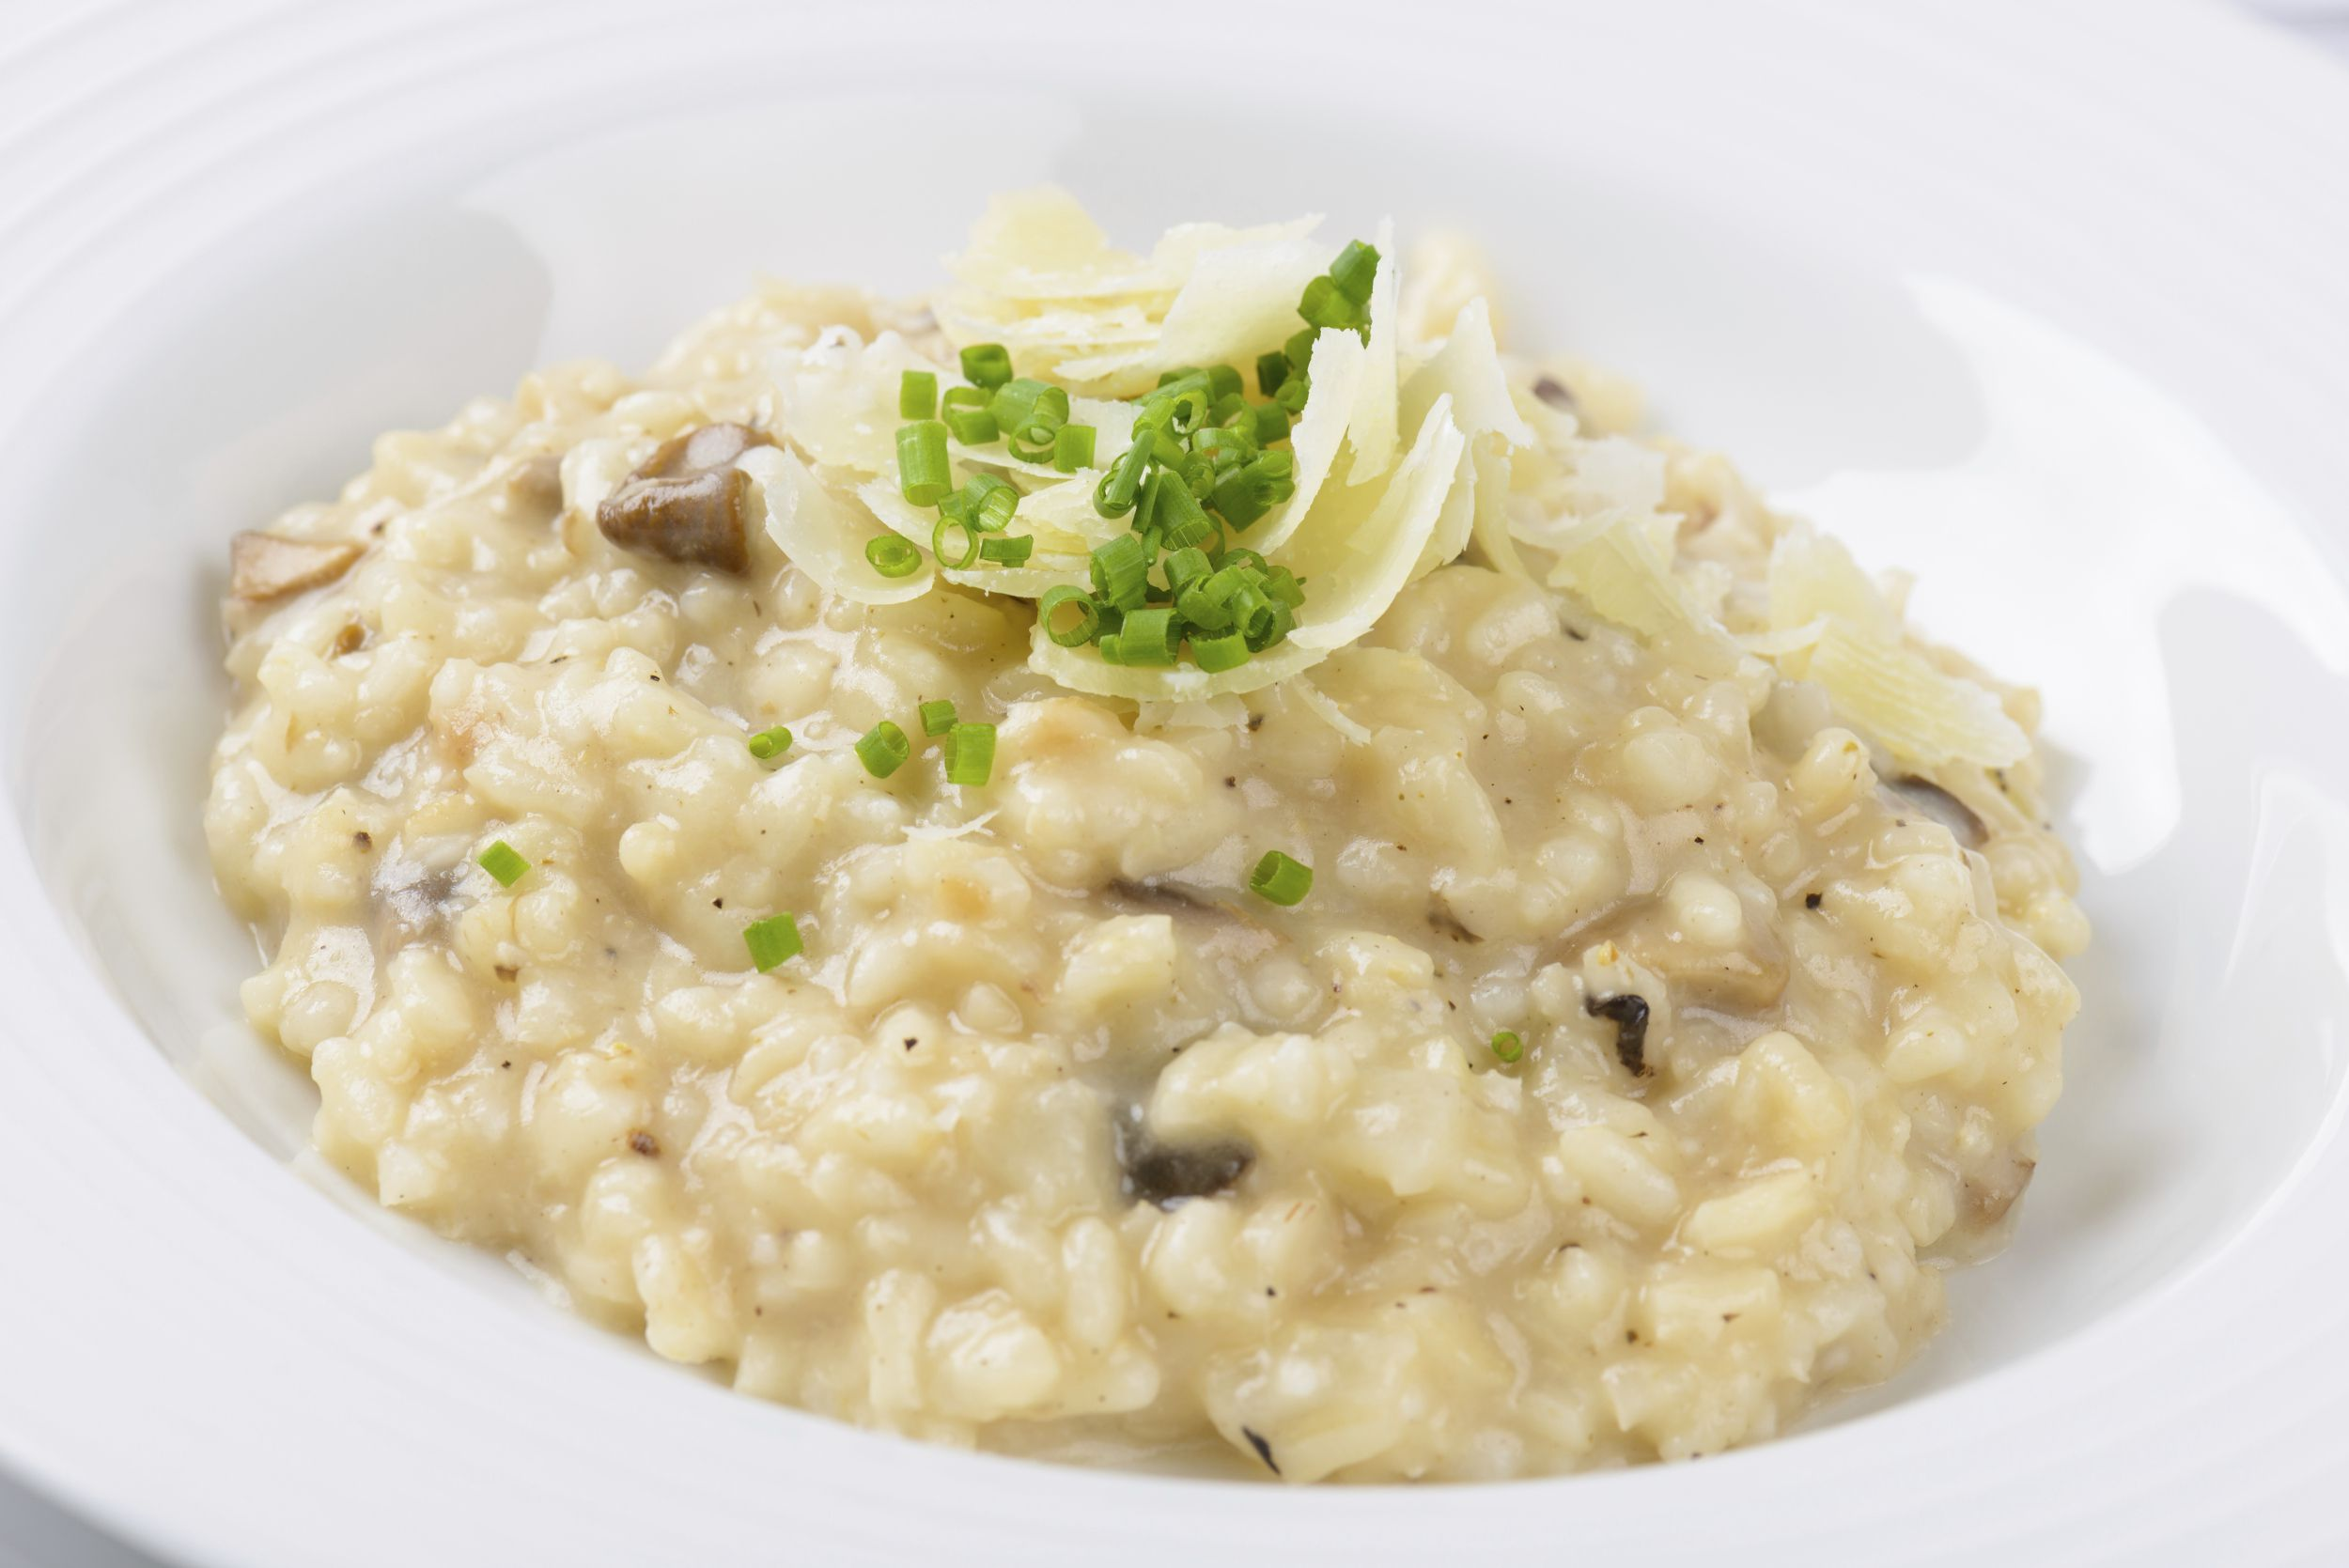 How To Make Risotto: Step-By-Step Tutorial with Photos